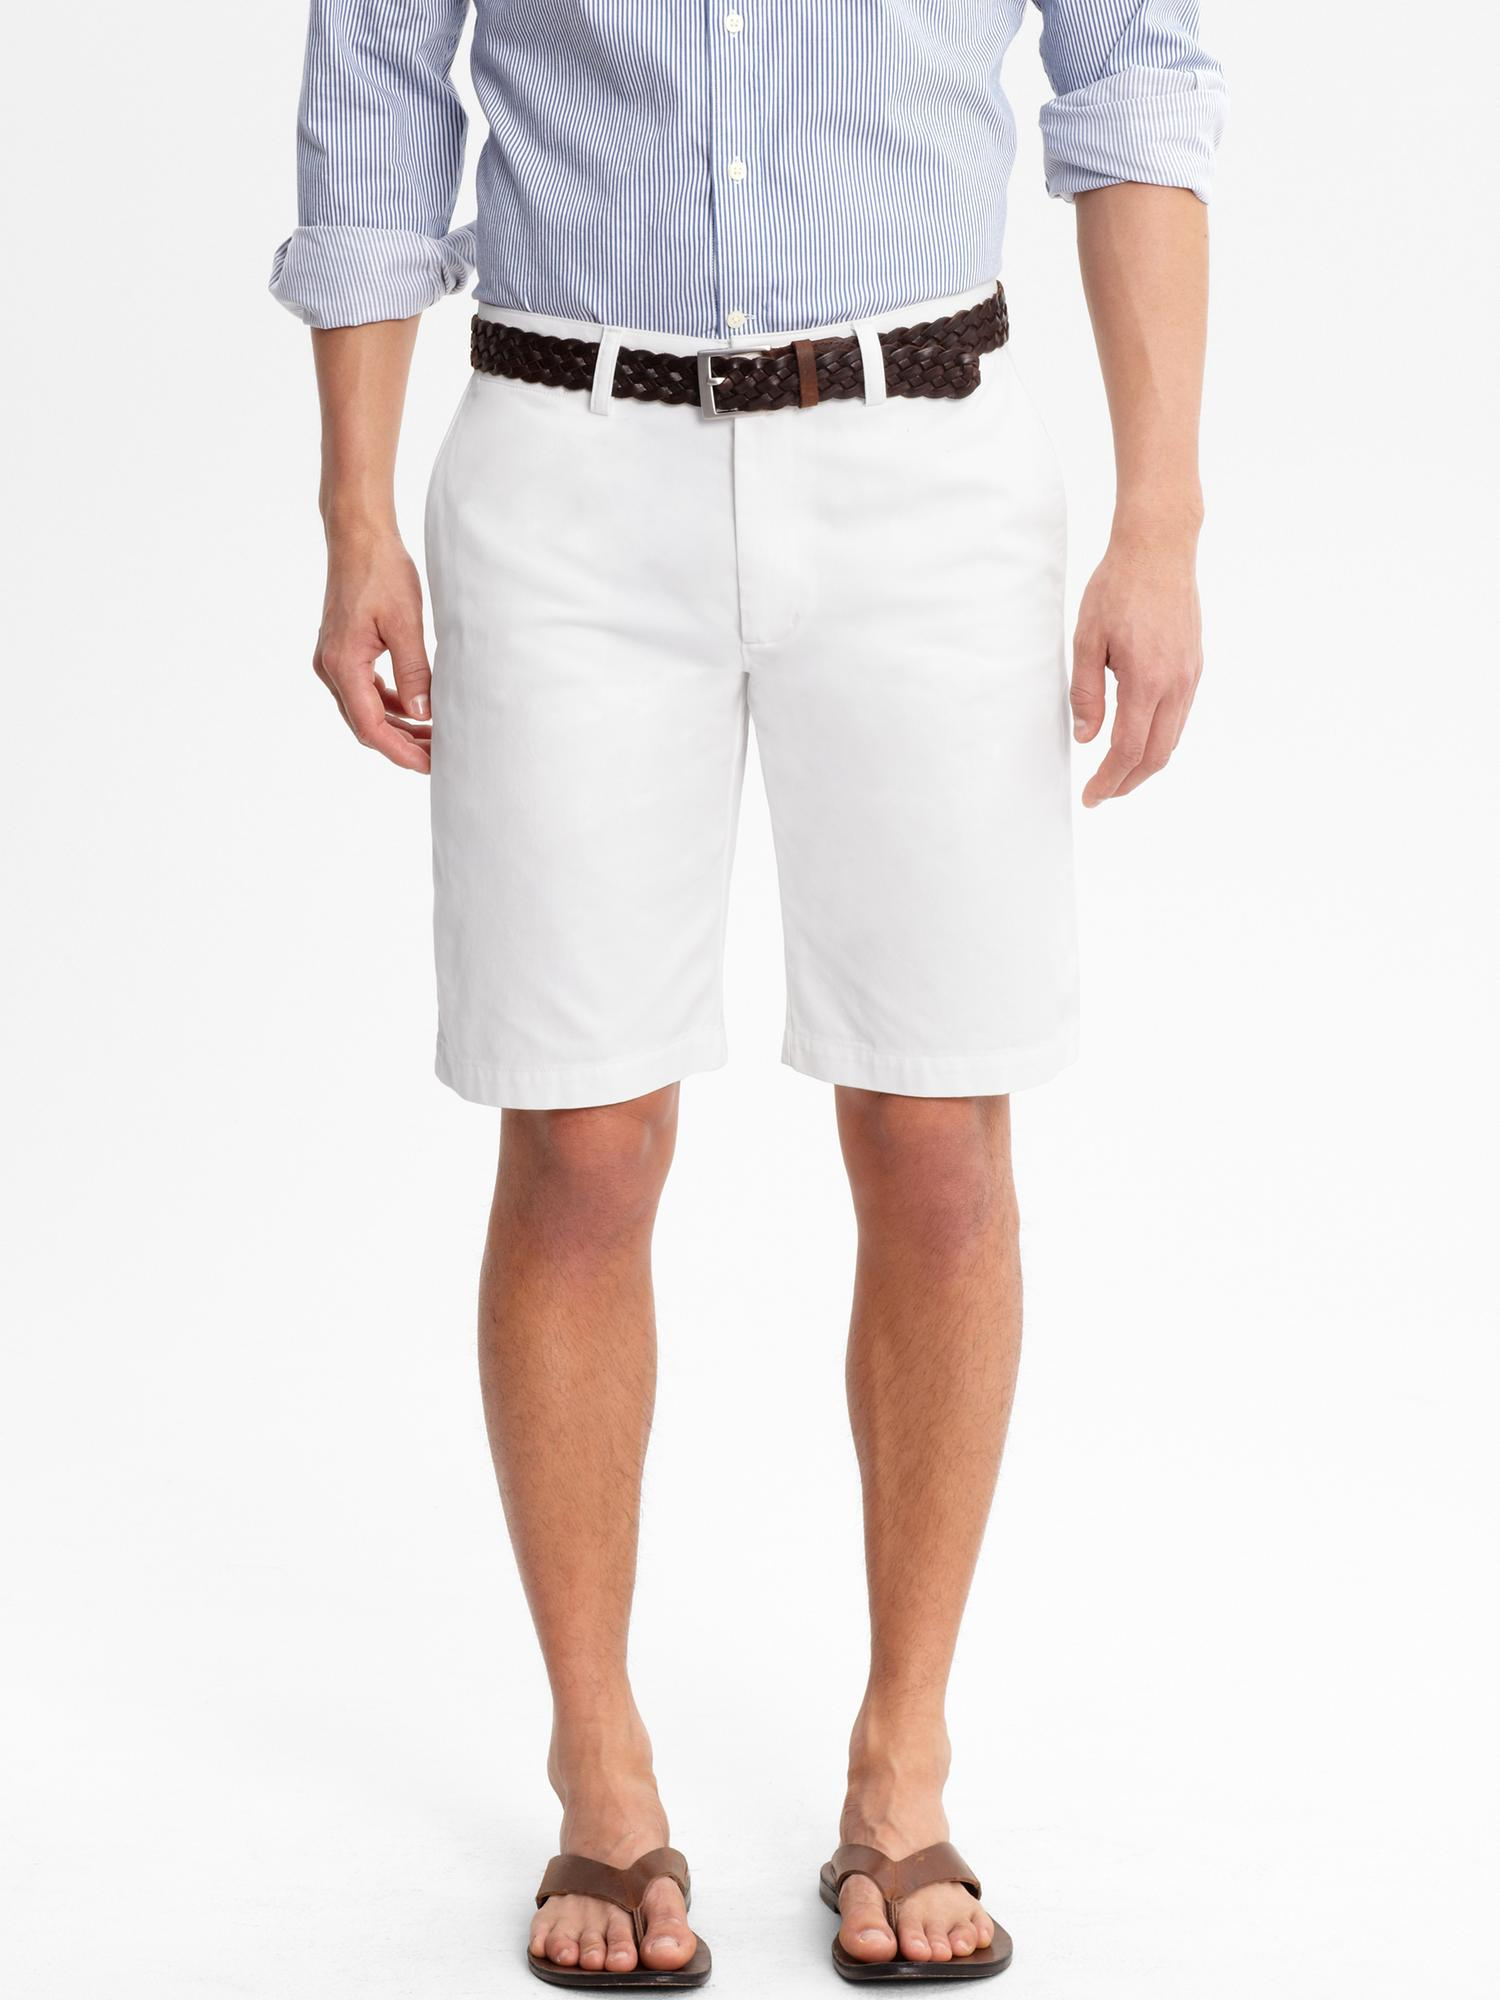 Shop Banana Republic Men's Shorts at up to 70% off! Get the lowest price on your favorite brands at Poshmark. Poshmark makes shopping fun, affordable & easy!